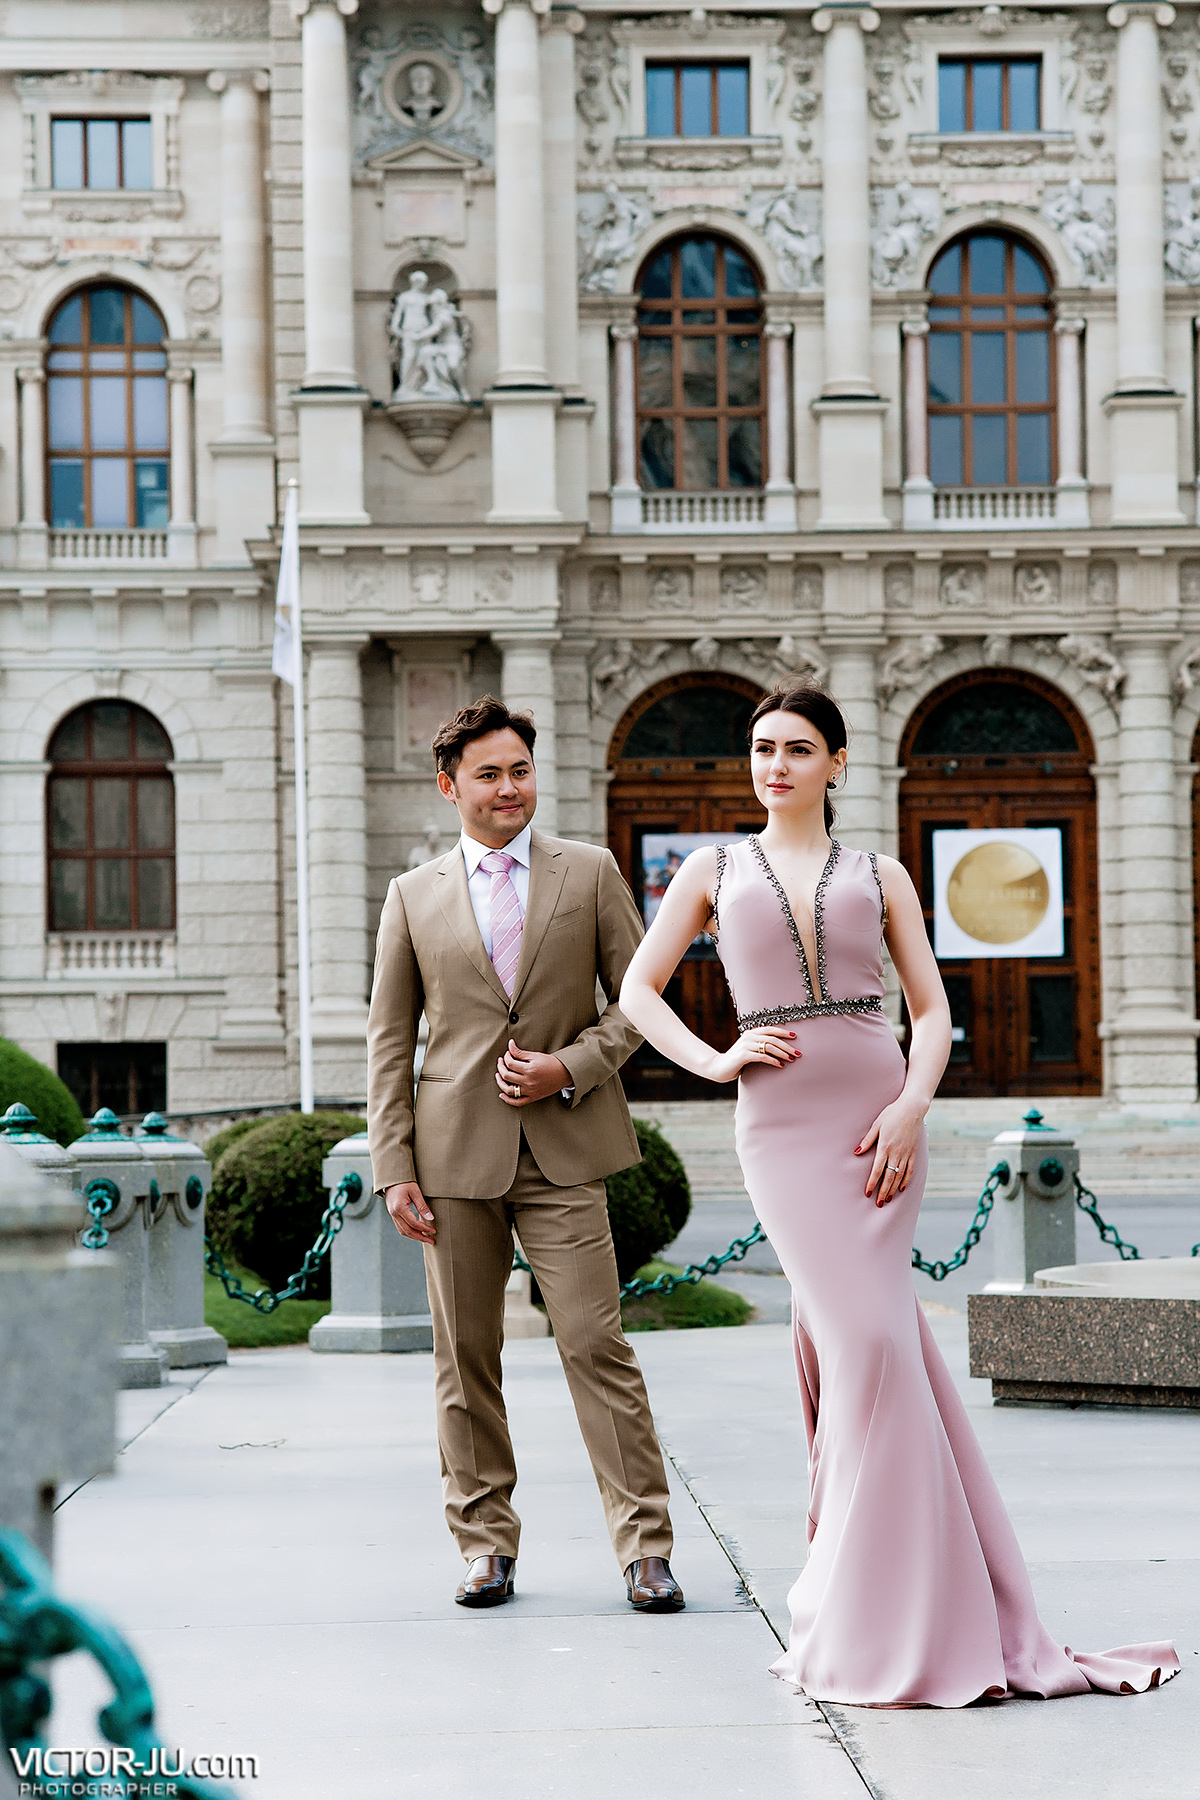 Wedding photographer in Wien